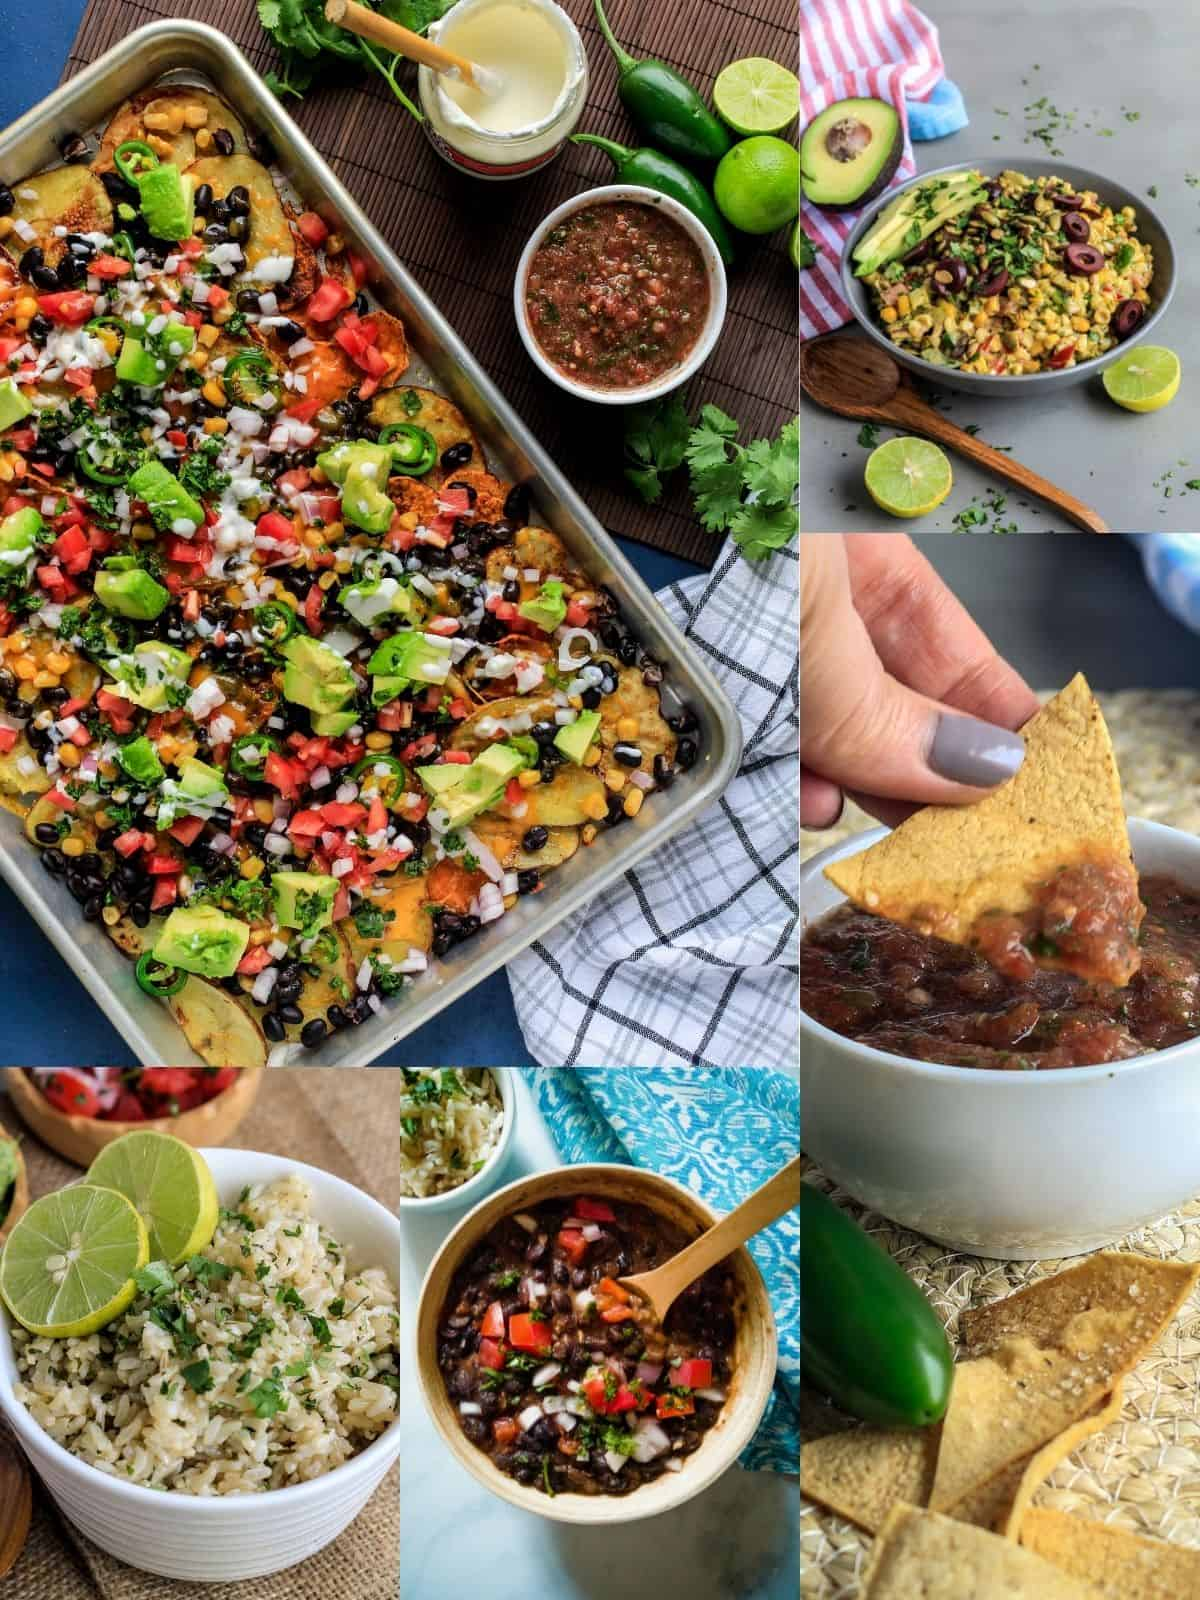 Collage of sides for fajitas including toppings and appetizers